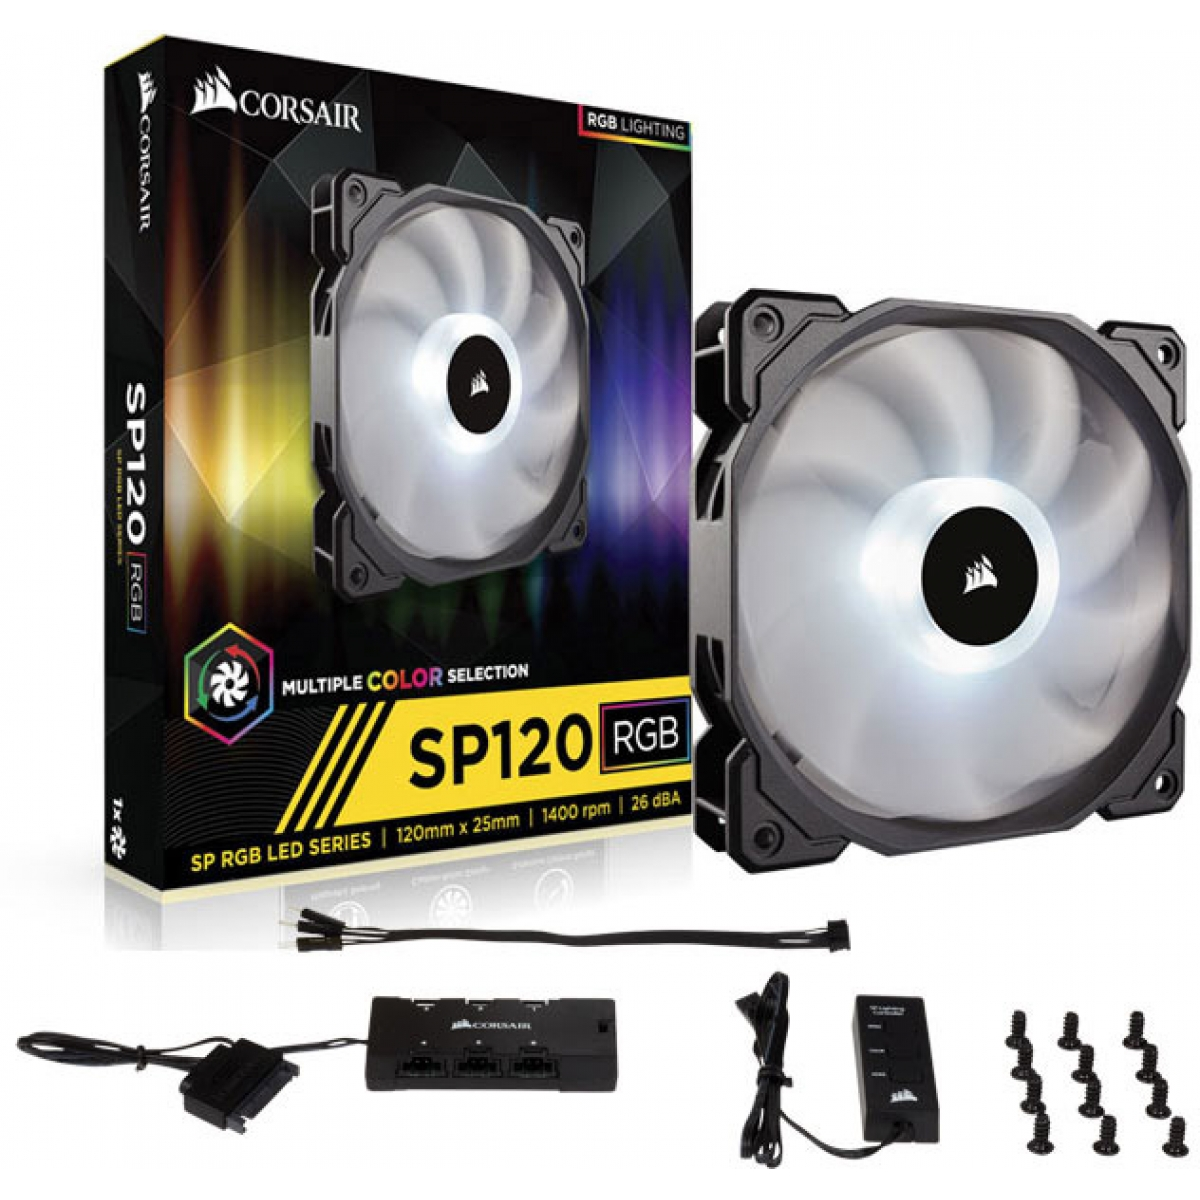 Cooler para Gabinete Corsair SP120 RGB, 120mm, com Controlador, CO-9050060-WW